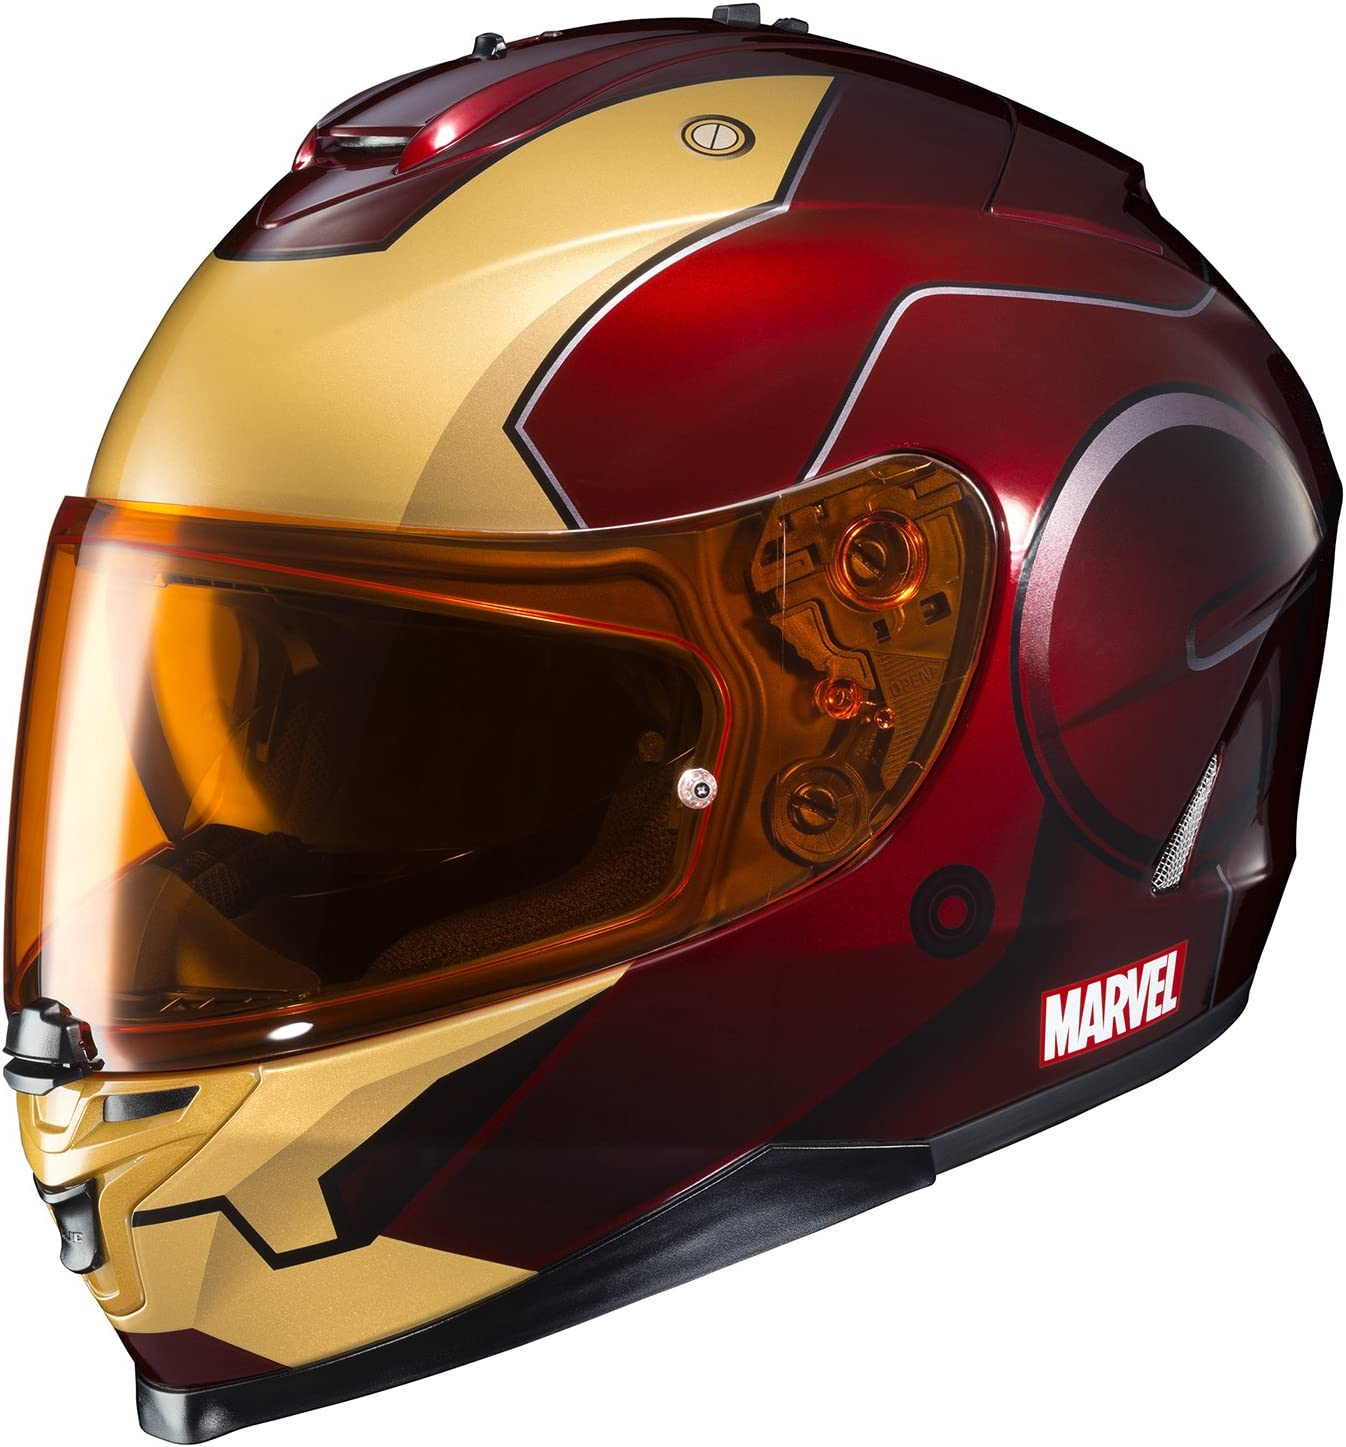 HJC Helmet Marvel IS 17- IRONMAN - Cool Motorcycle Helmets for Men